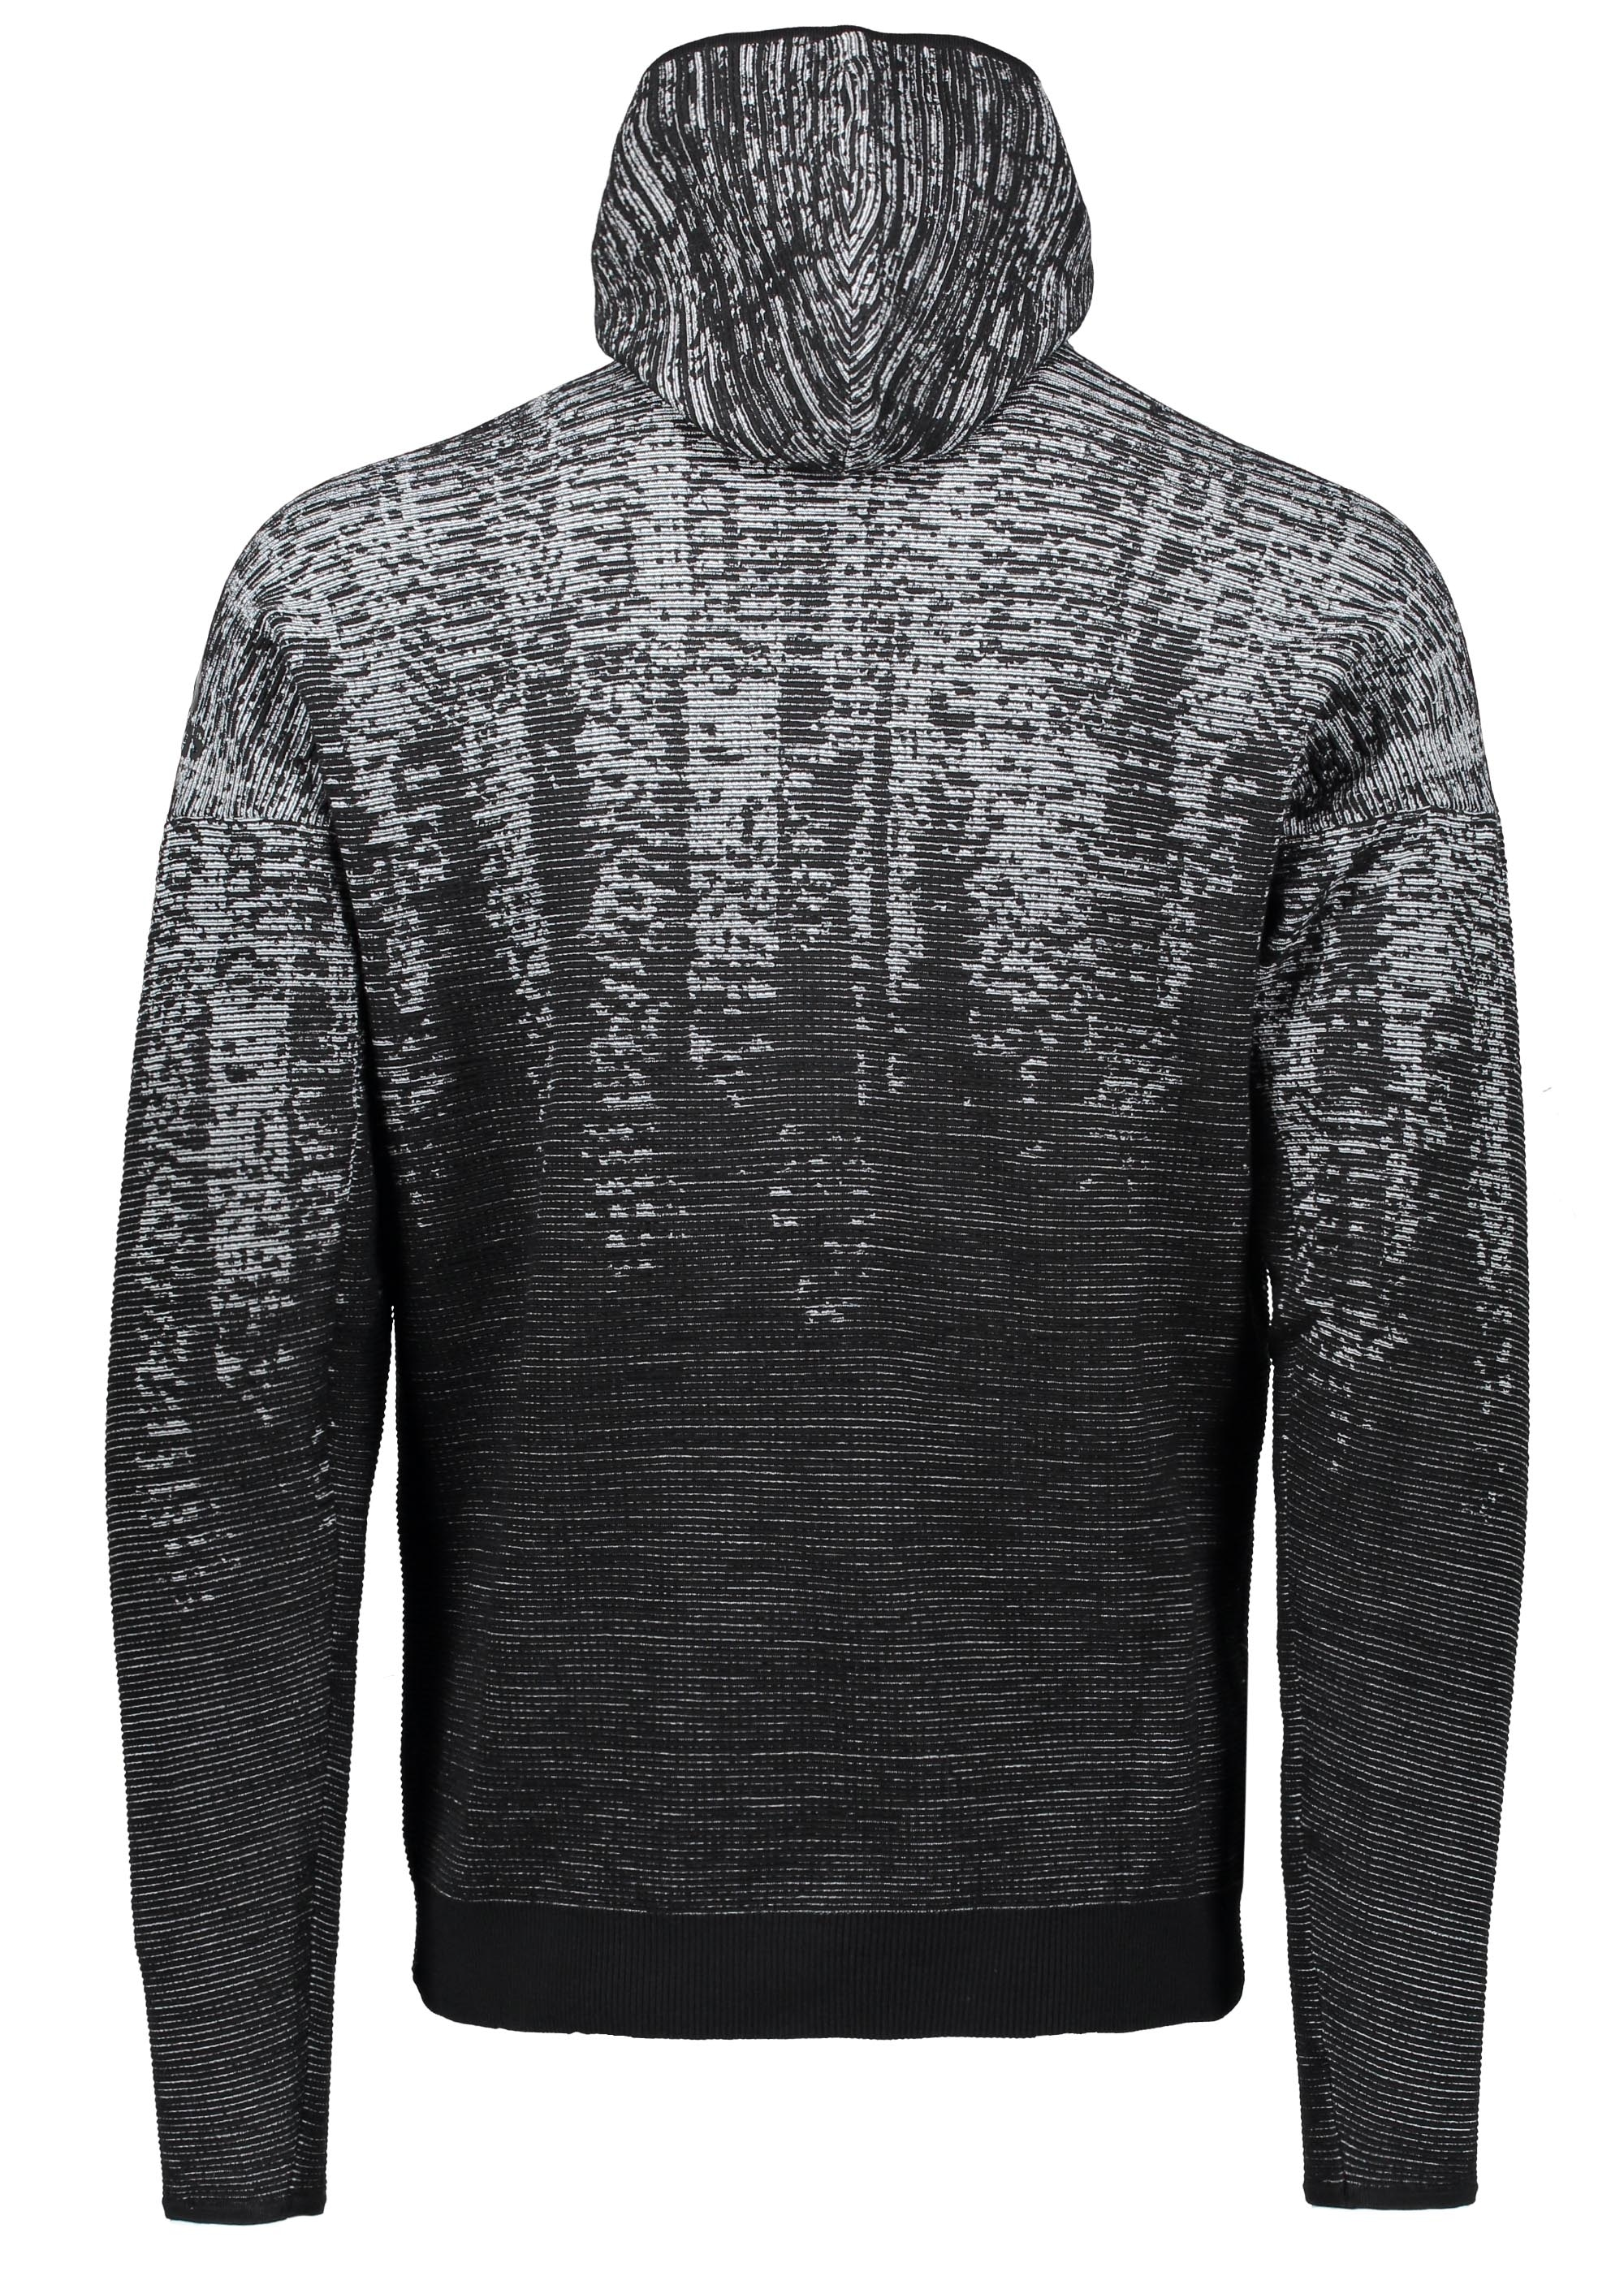 94bd6927a adidas Originals Apparel ZNE Pulse Knit Hoody - Black / White ...